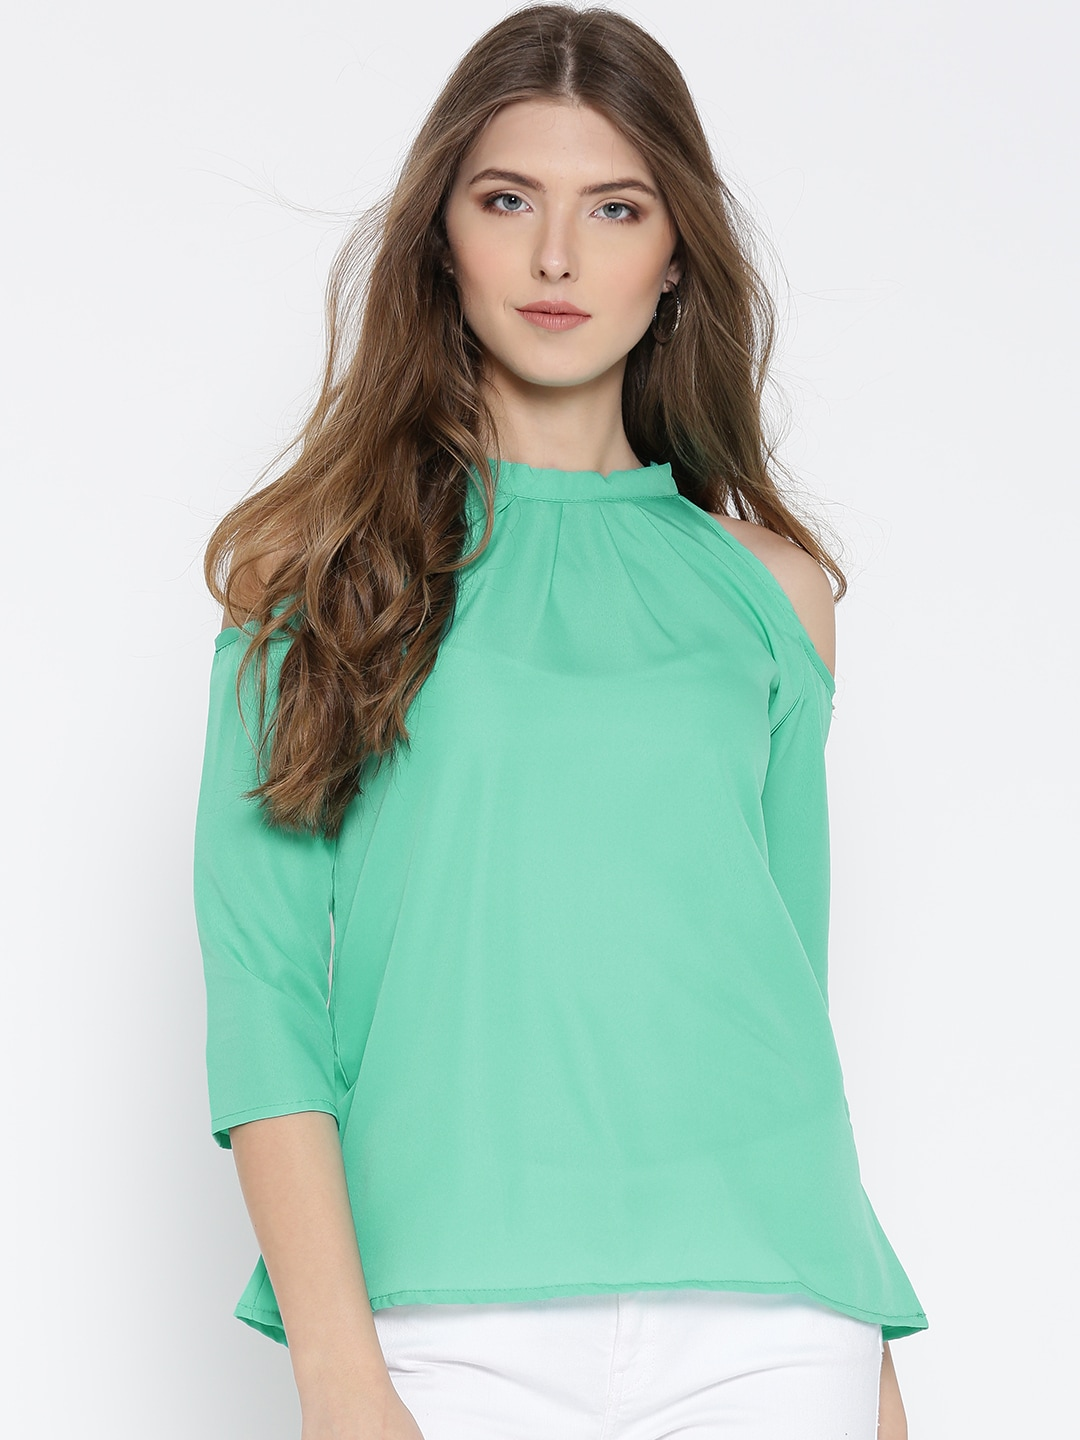 Cold Shoulder Tops - Buy Cold Shoulder Tops for Women Online - Myntra